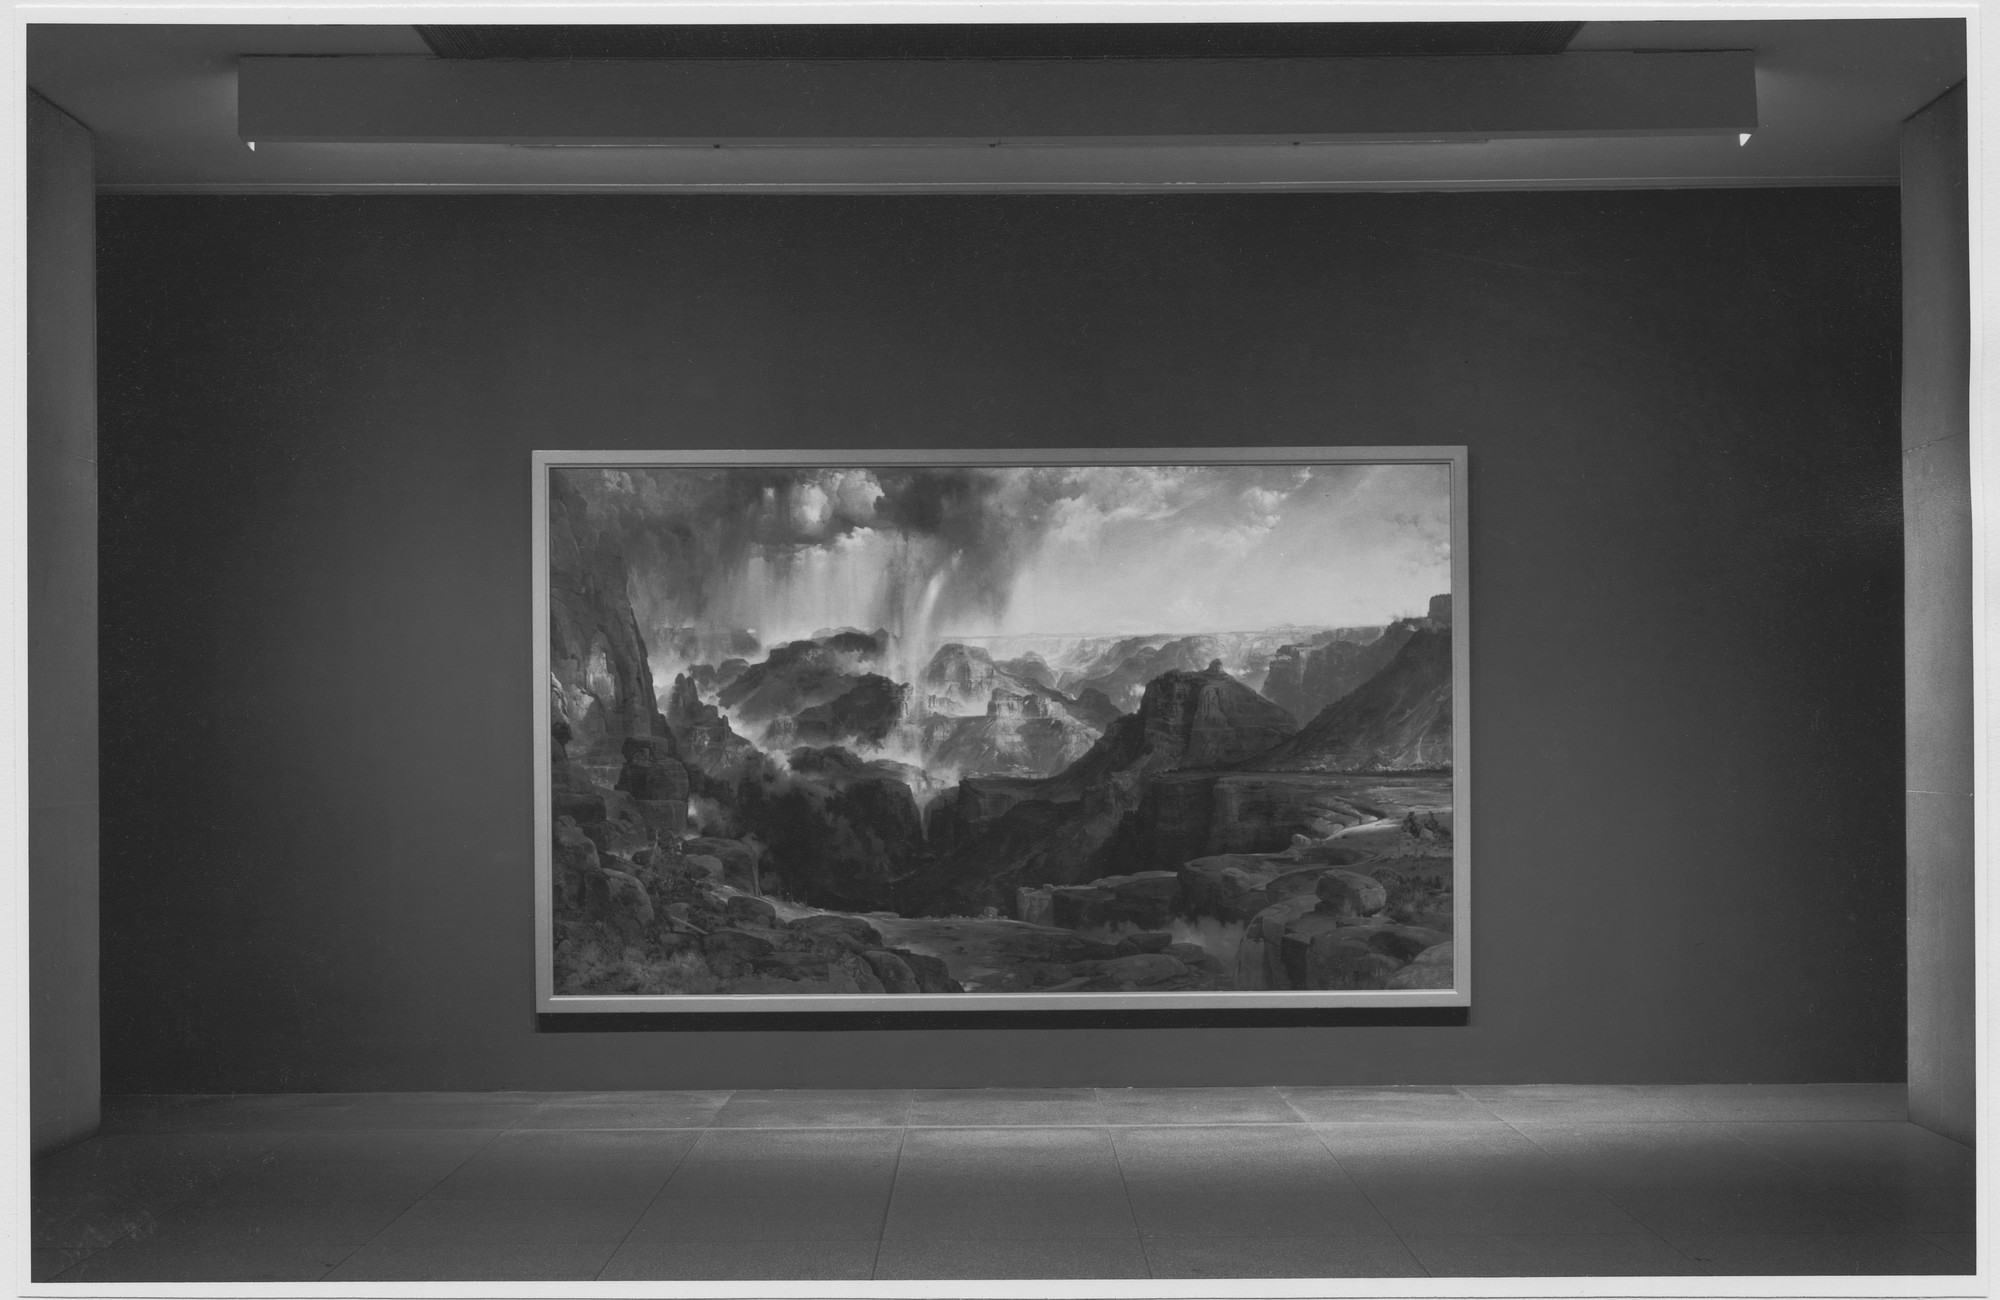 "Installation view of the exhibition, ""The Natural Paradise: Painting in America 1800-1950."" September 29, 1976–November 30, 1976. Photographic Archive. The Museum of Modern Art Archives, New York. IN1148.1. Photograph by Katherine Keller."